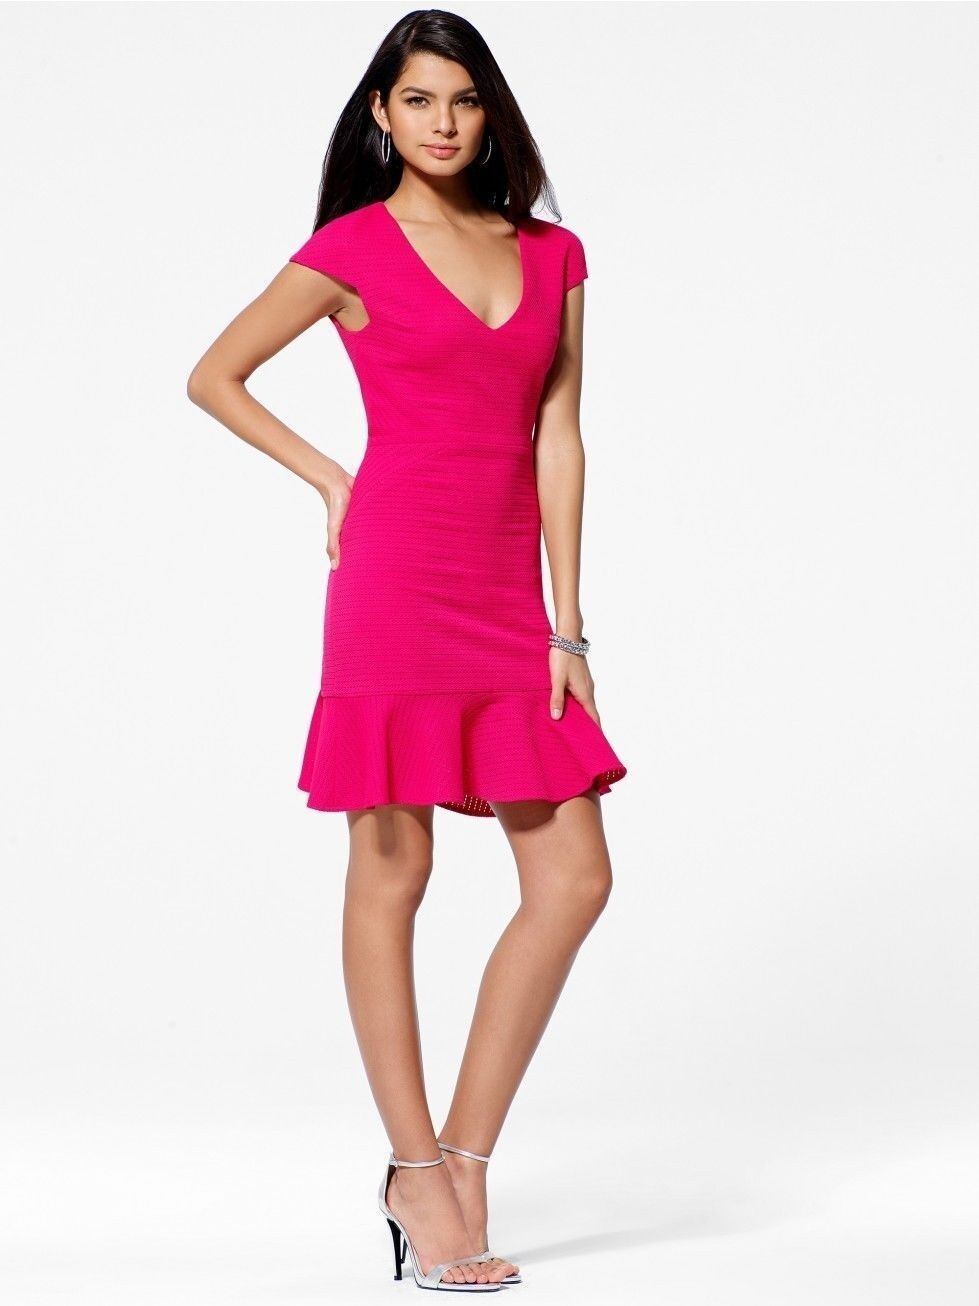 NWT Sexy Pink Knit Flounce Stretch Dress Brand Cache    4 S